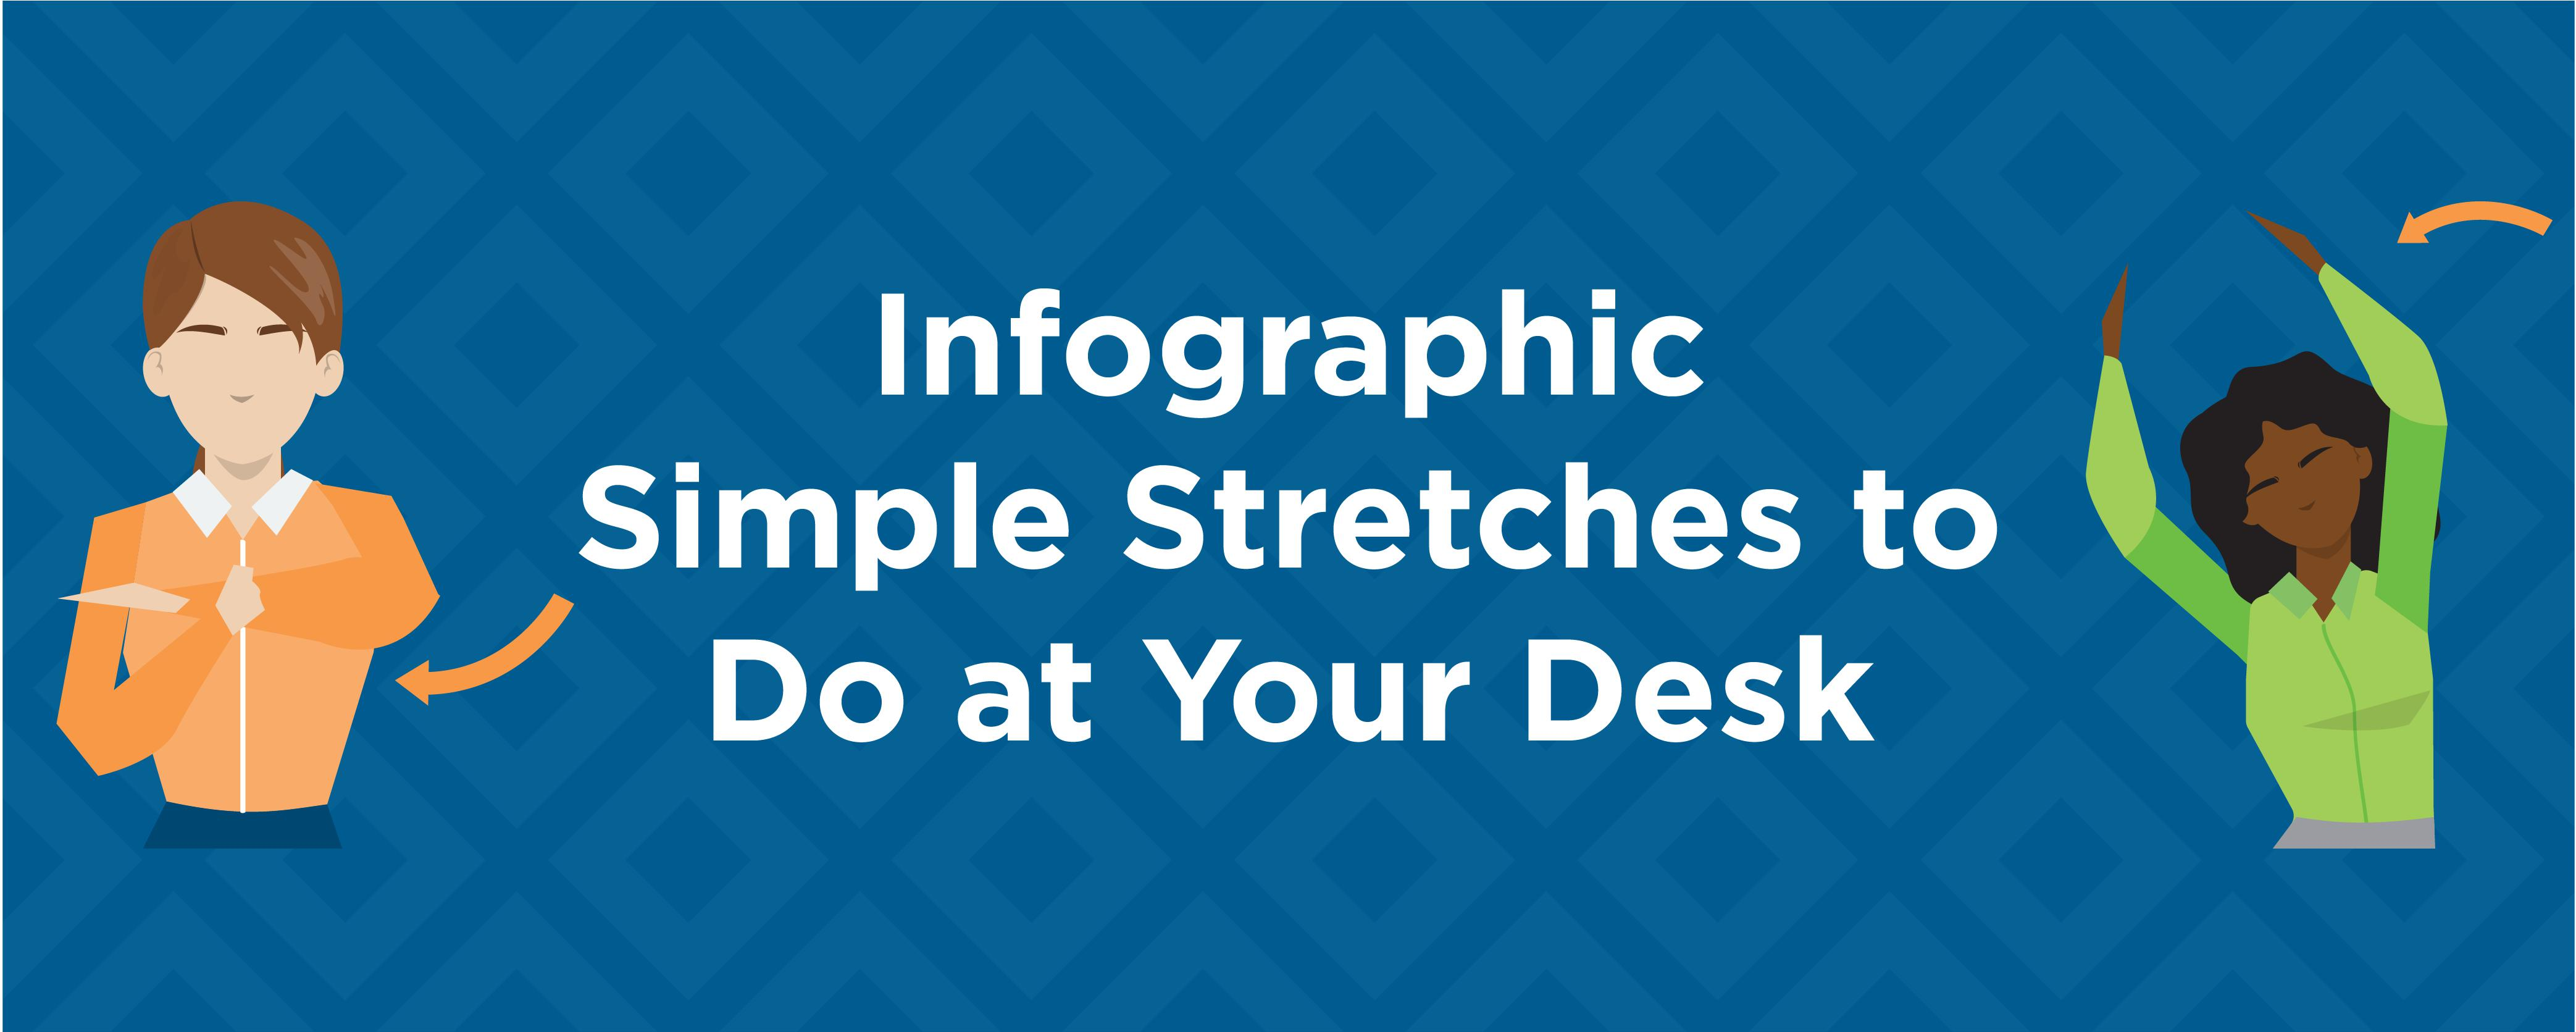 infographic-simple-stretches-to-do-at-your-desk